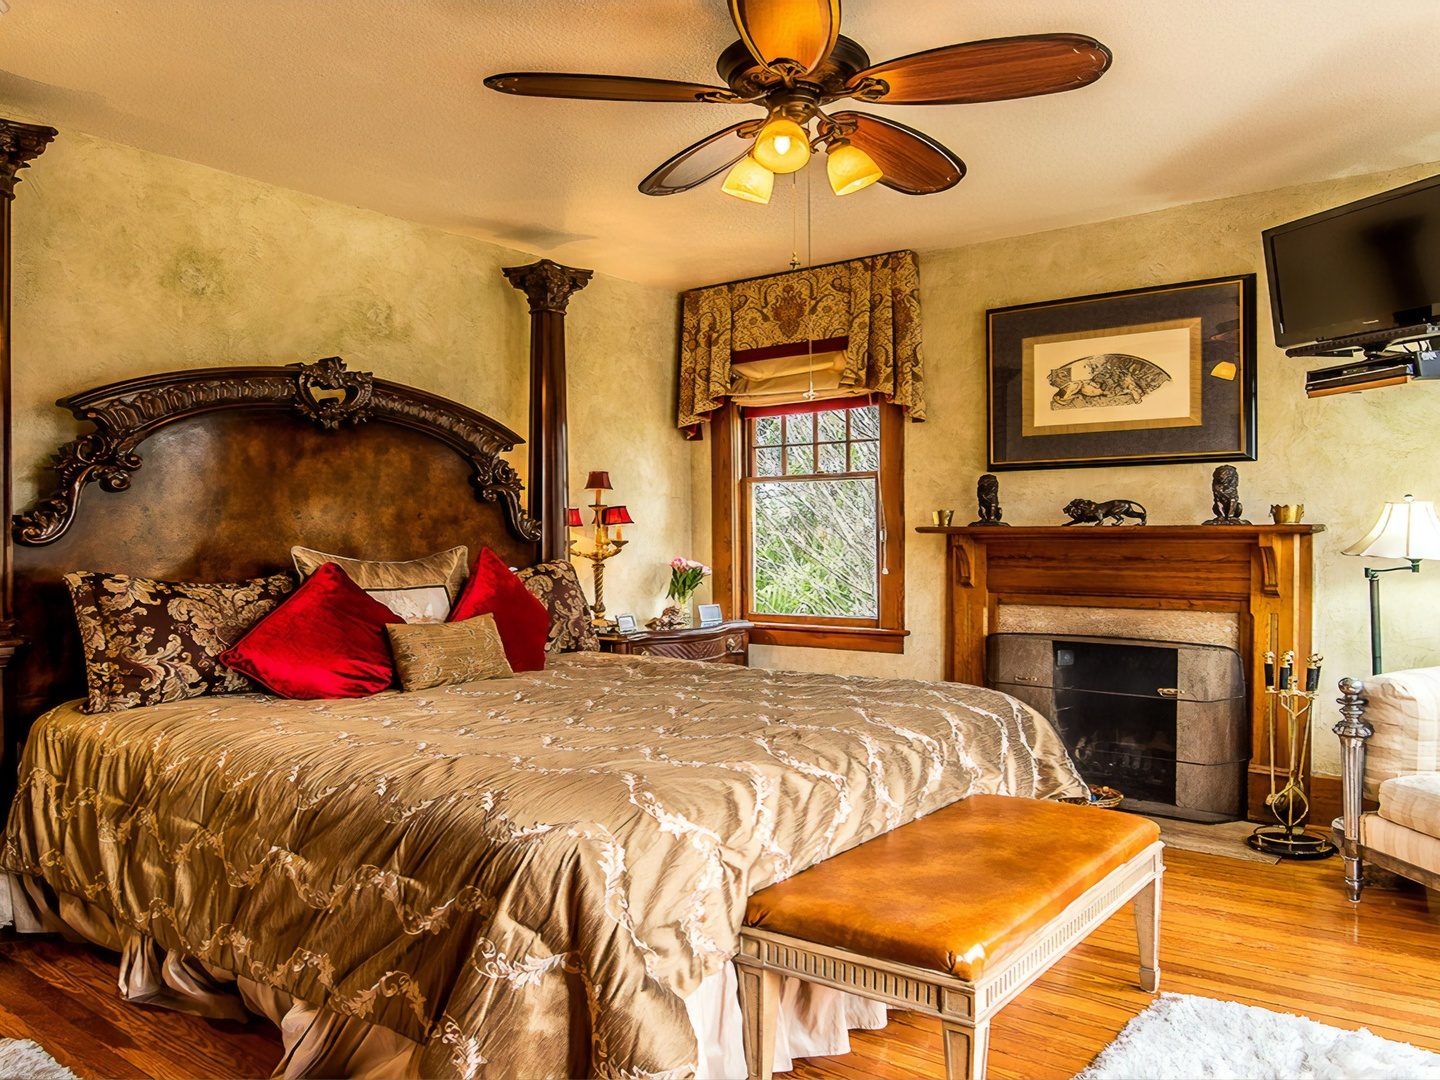 A living room with a bed and a fireplace at Cumberland Falls Bed and Breakfast Inn.